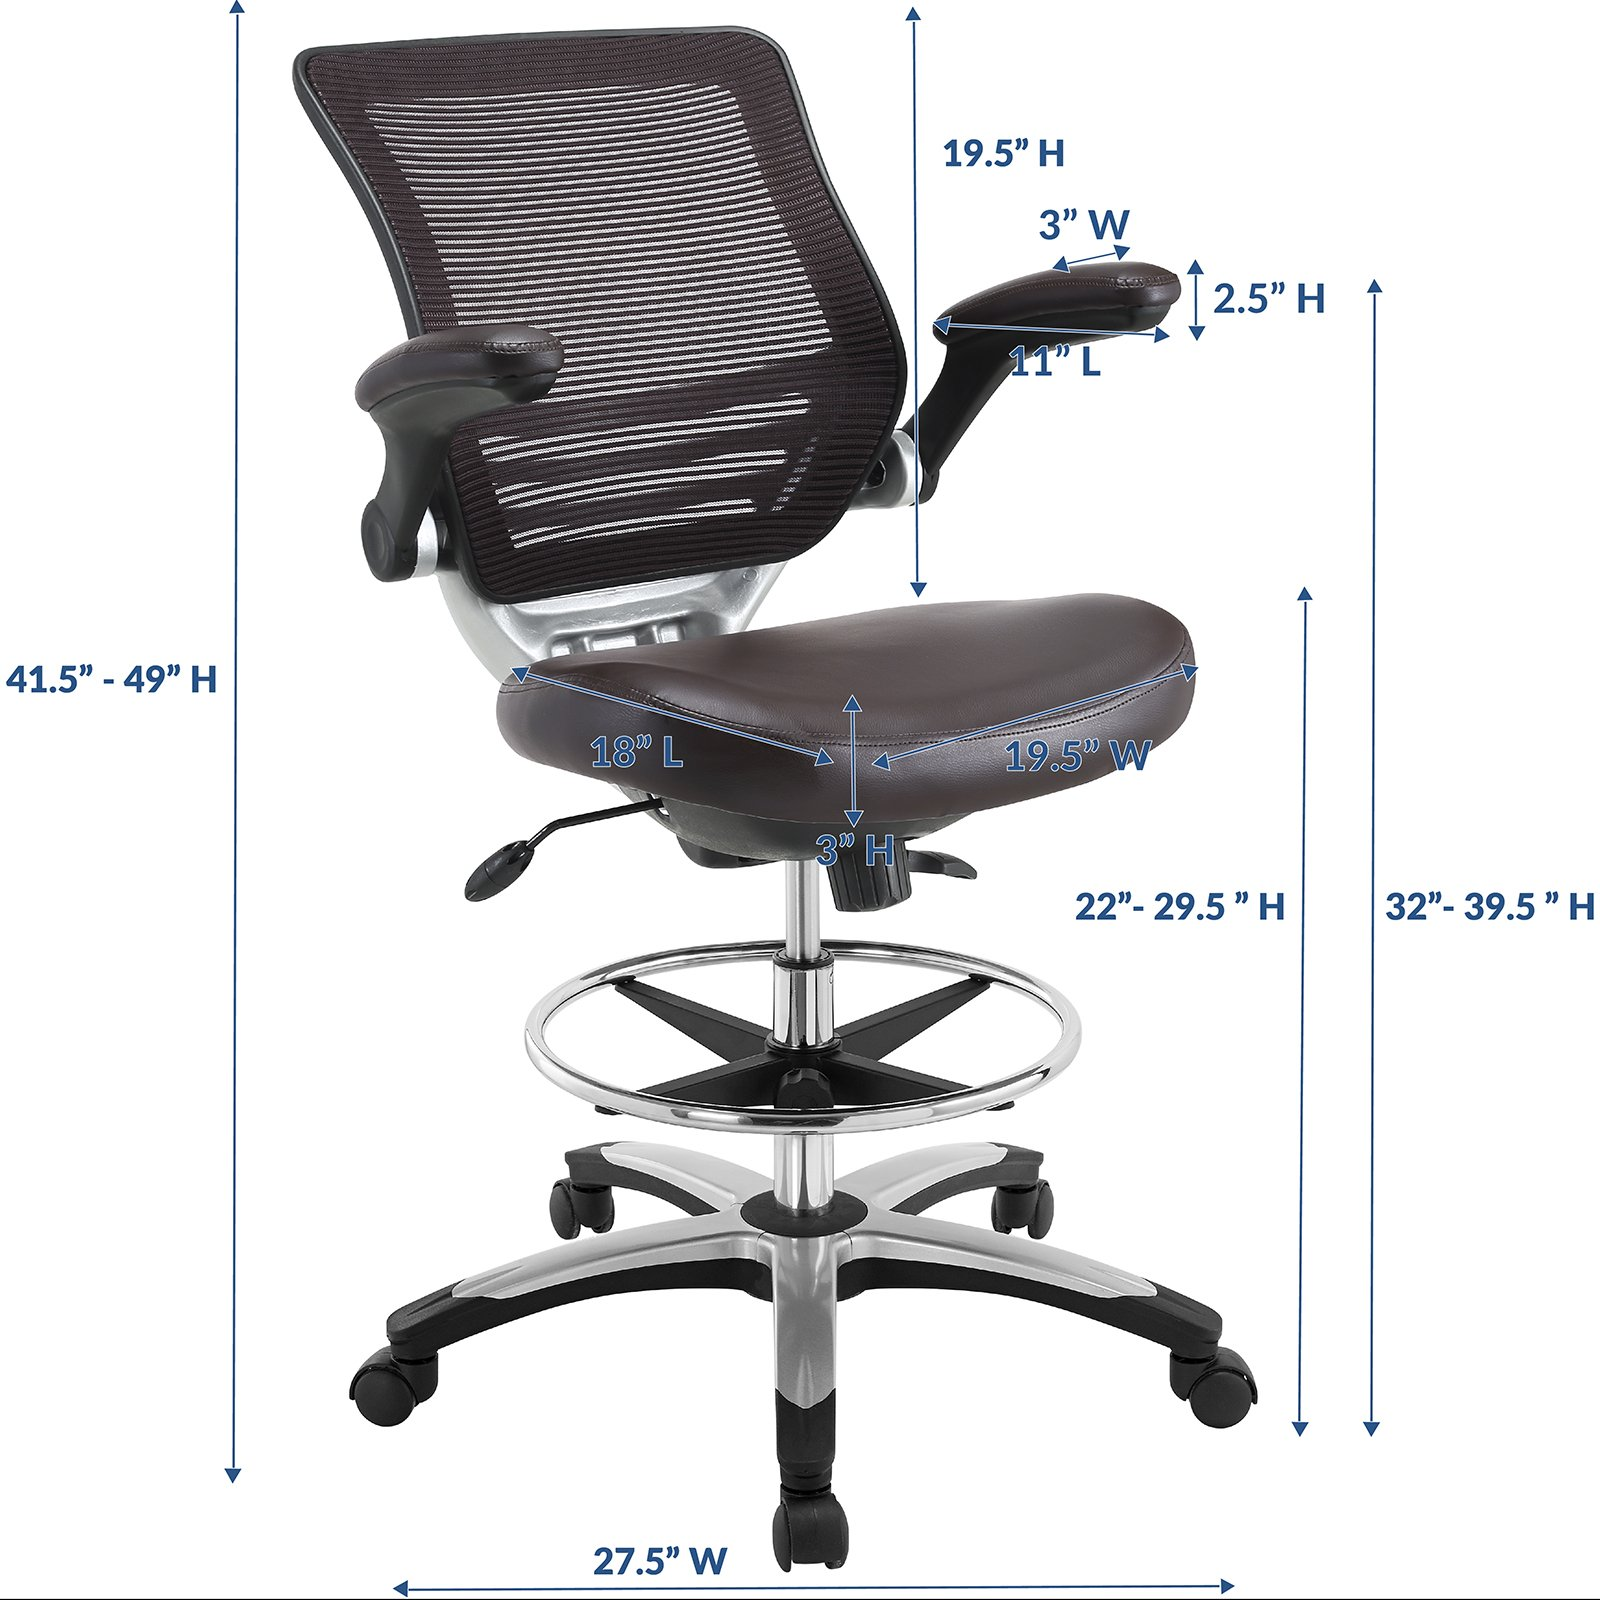 Modway Edge Drafting Chair In Brown - Reception Desk Chair - Tall Office Chair For Adjustable Standing Desks - Flip-Up Arm Drafting Table Chair by Modway (Image #2)